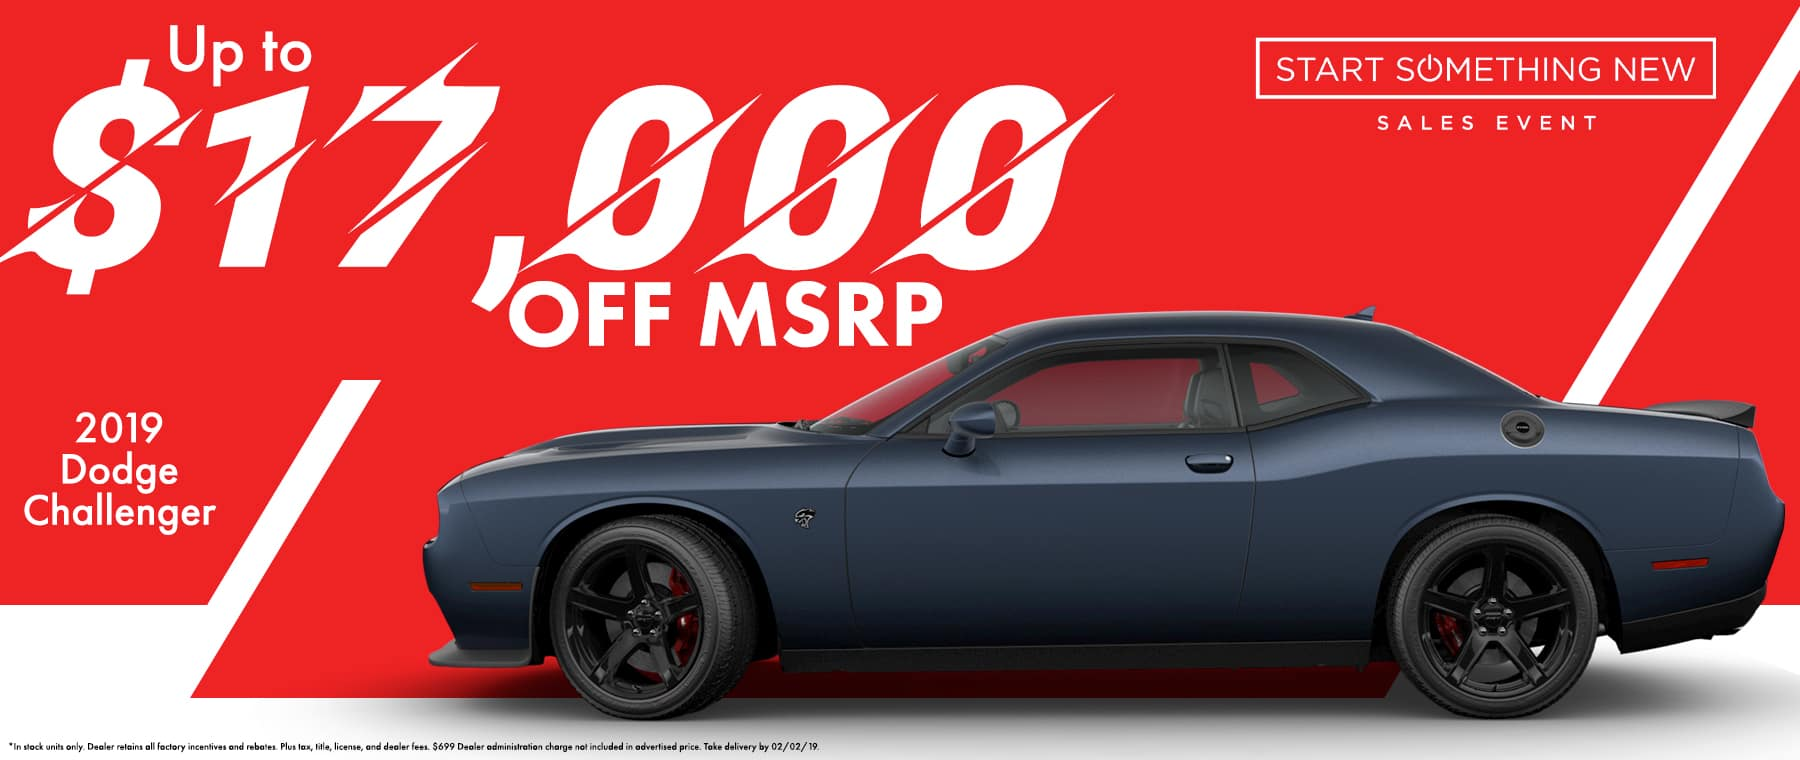 2019 Dodge Challenger up to $17000 off!